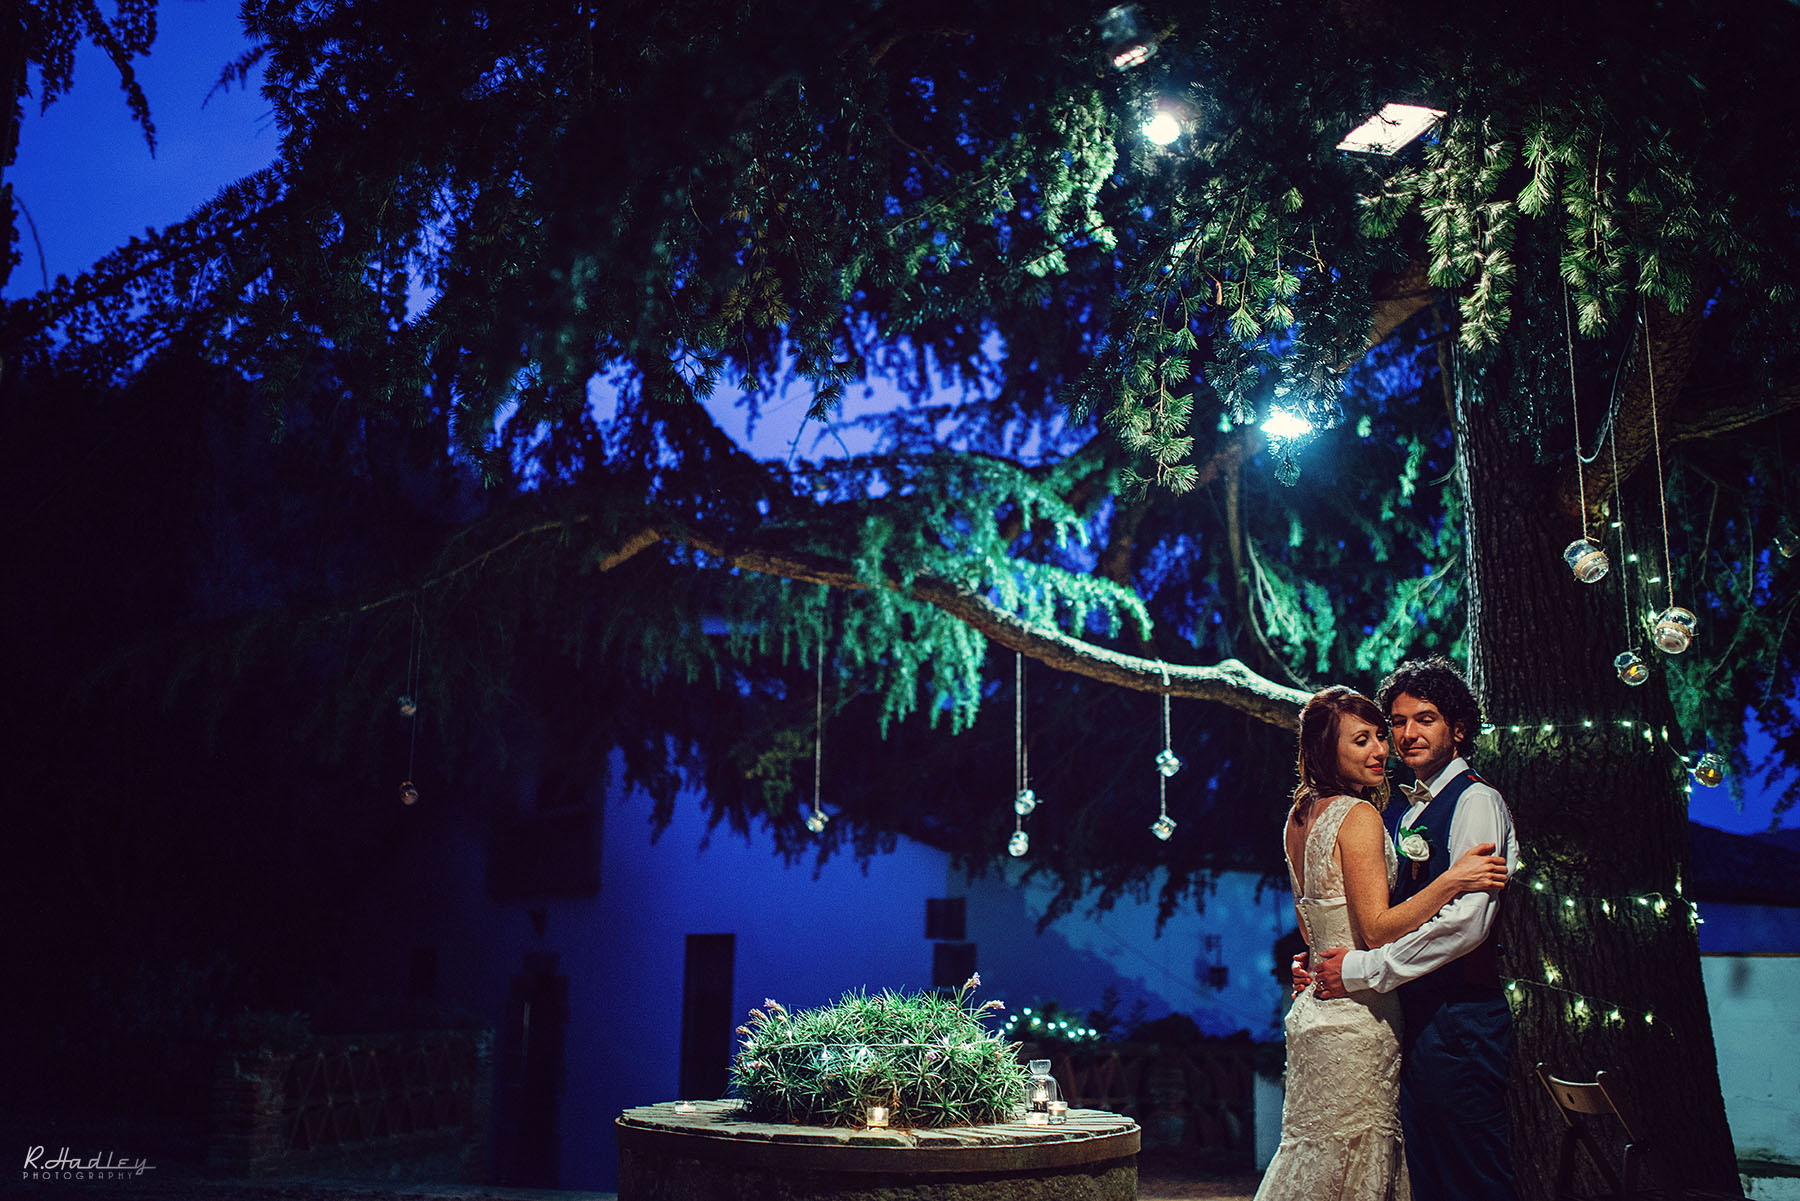 Wedding photographer at Sant Pere de Clara, Barcelona